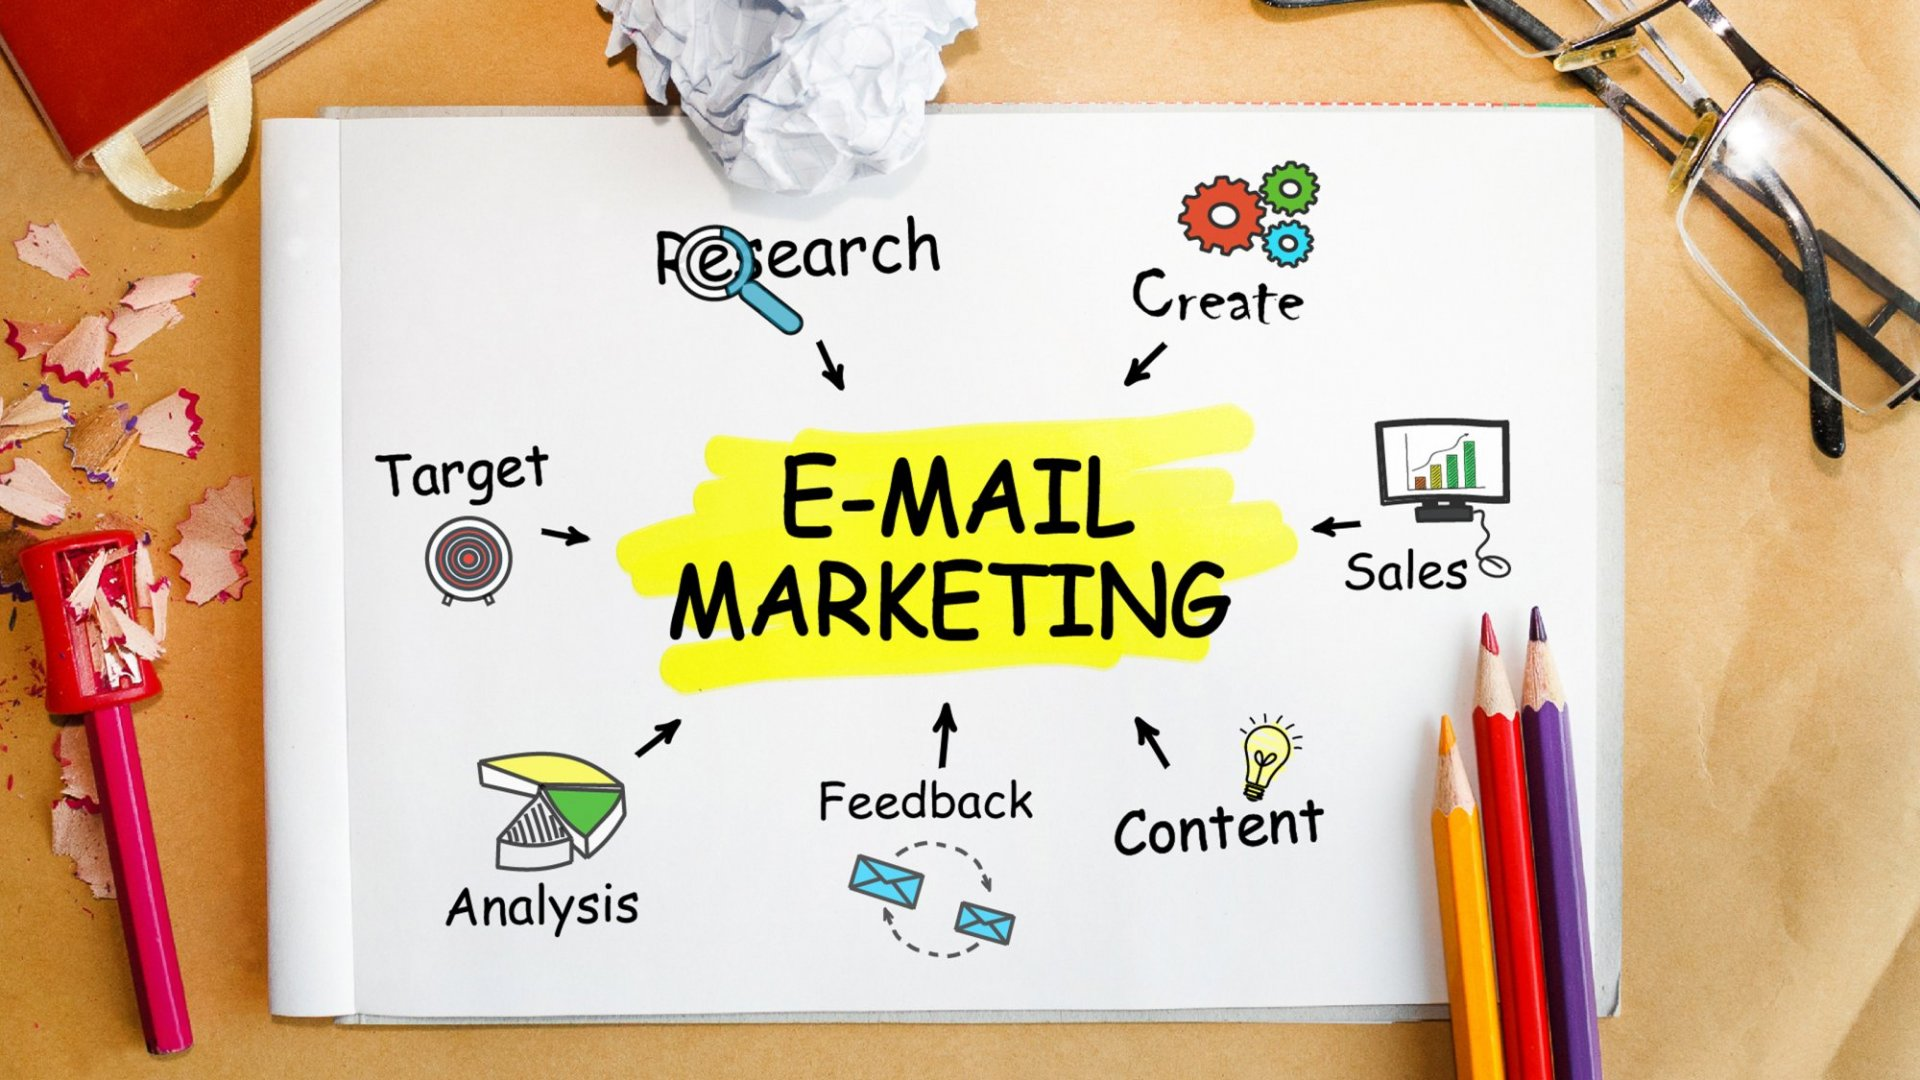 Email Marketing Tools & Small Business: How to Find the Right Tool for You